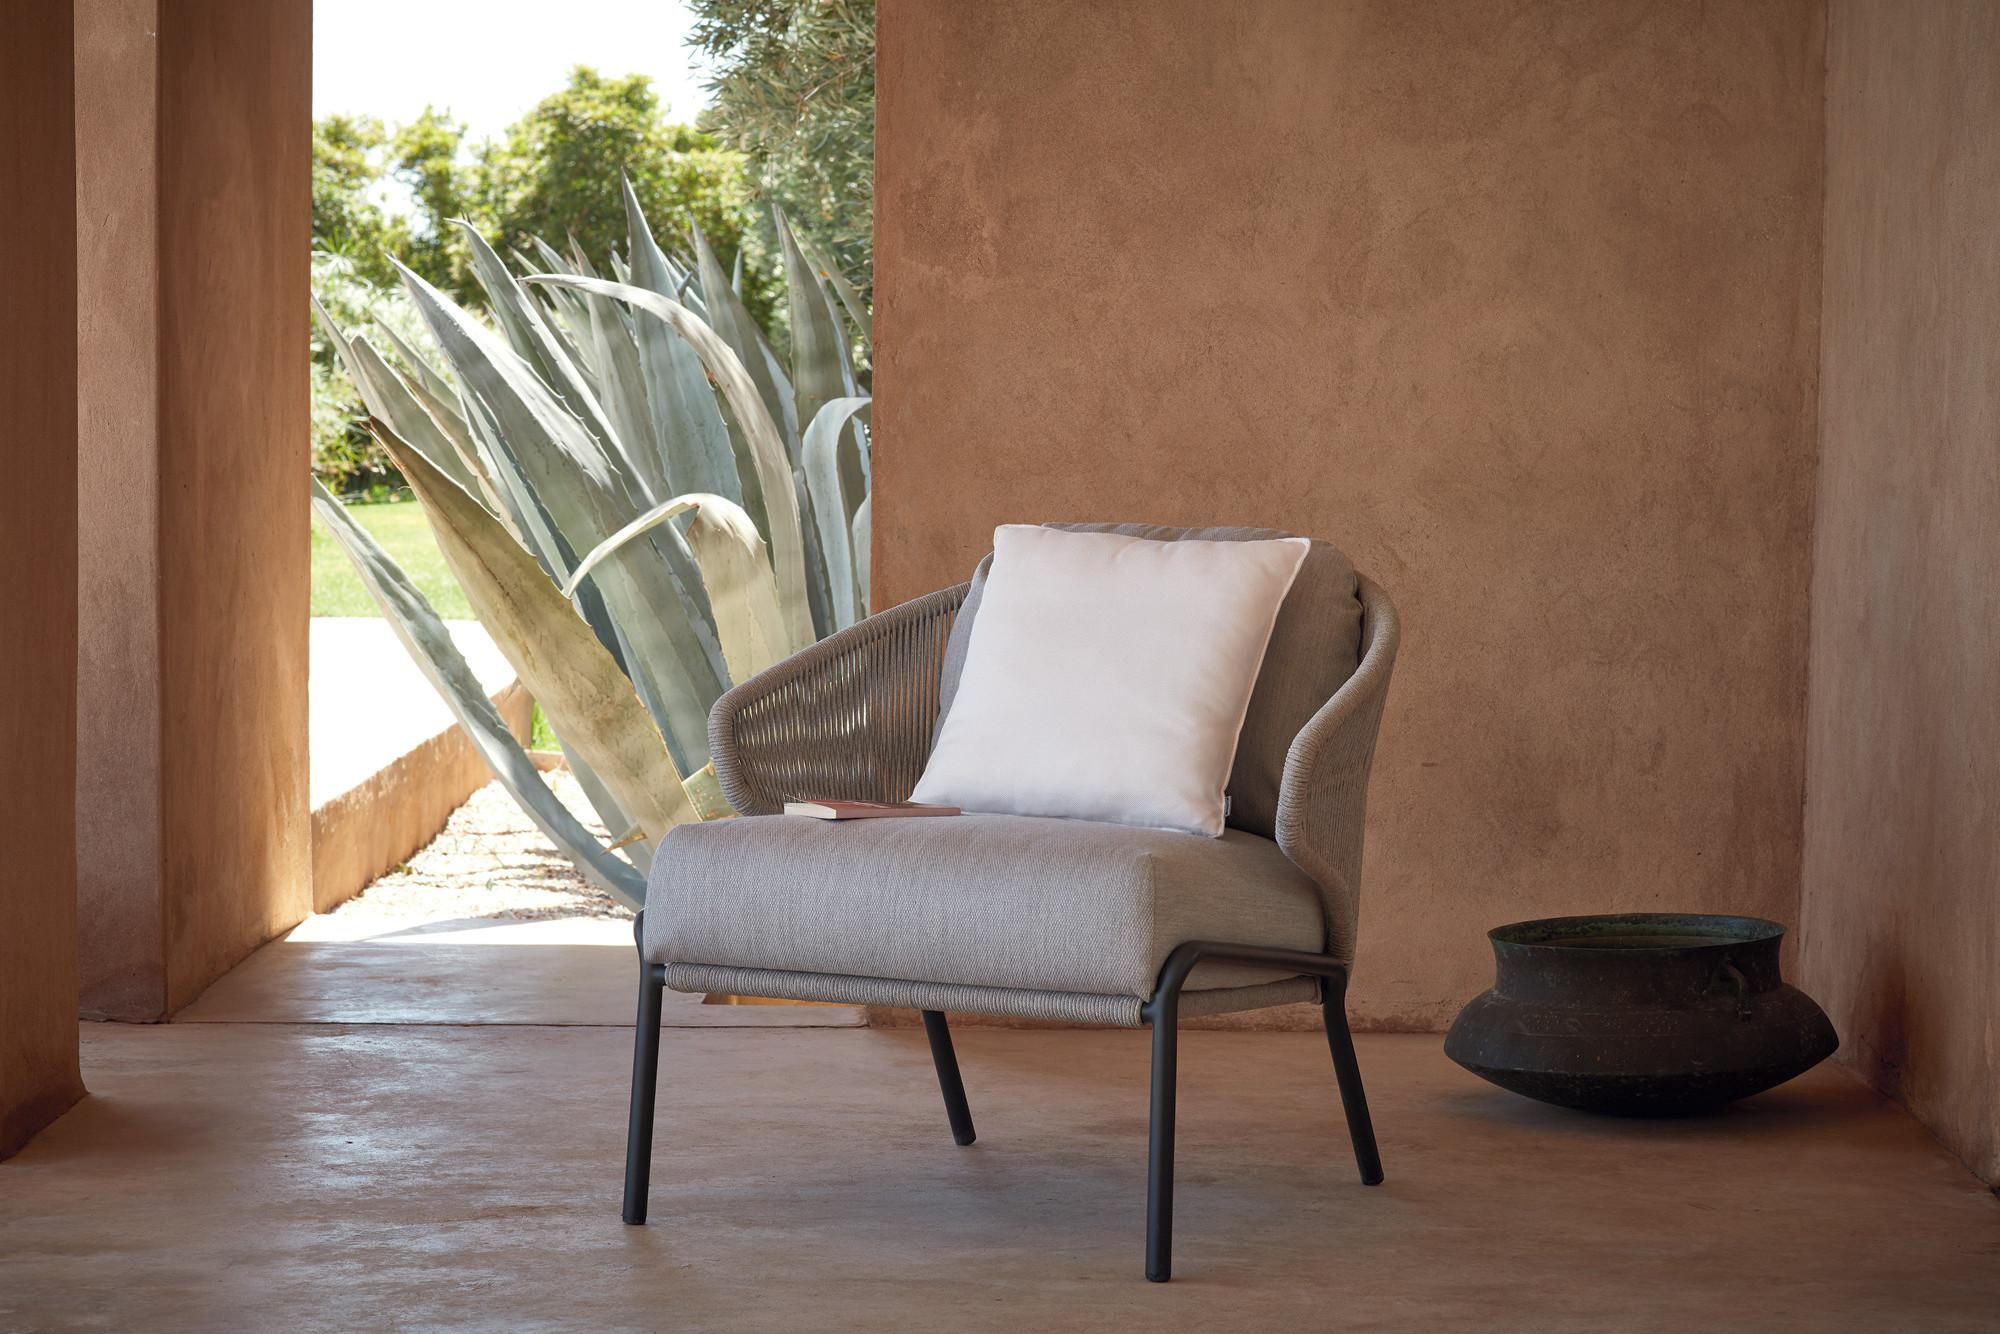 Radius lounge chair in small patio